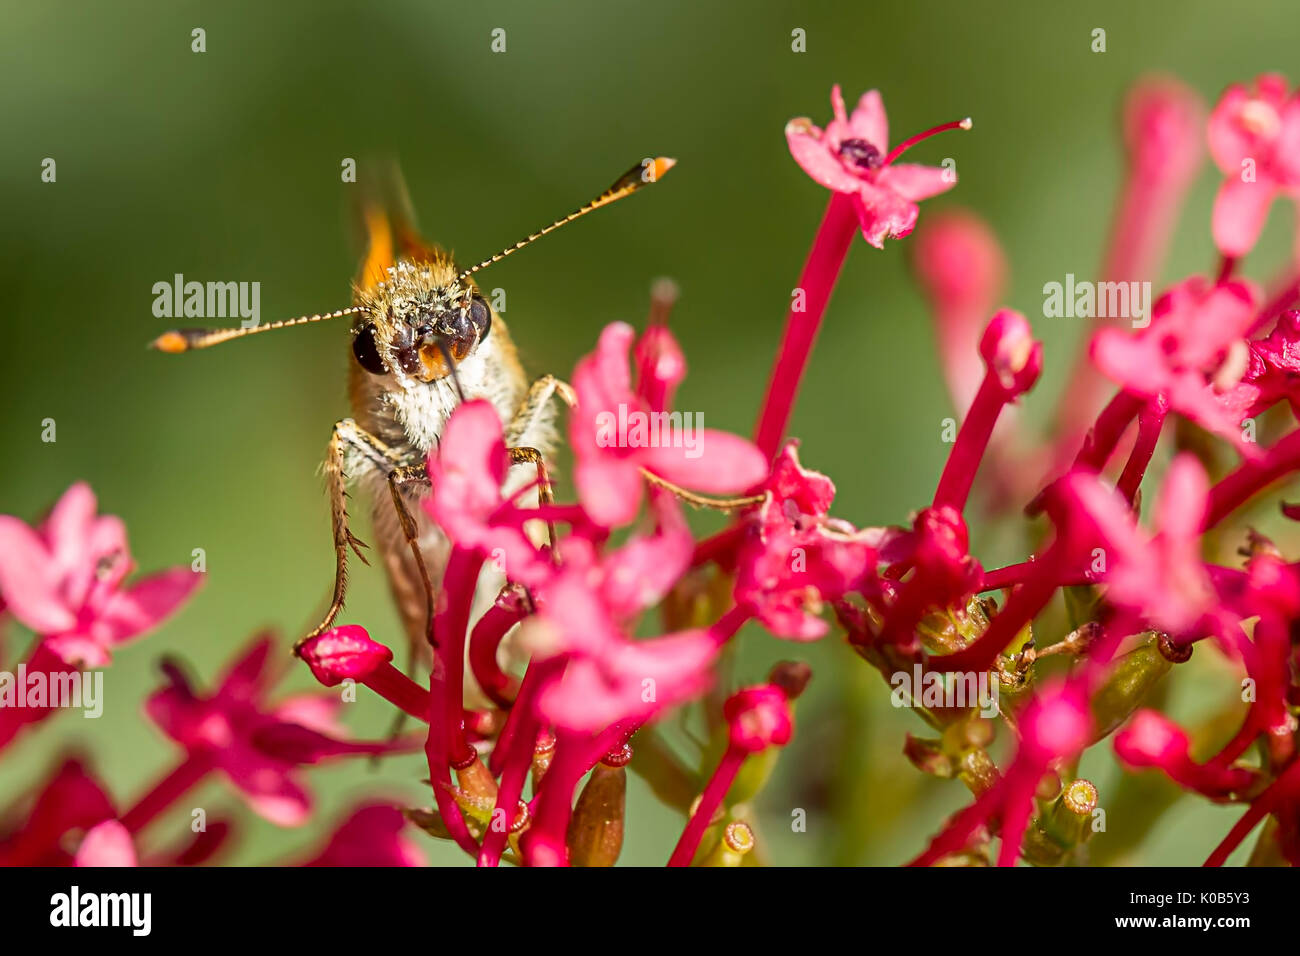 A close up of a moth on a flower with its antennae out wode on its head. - Stock Image